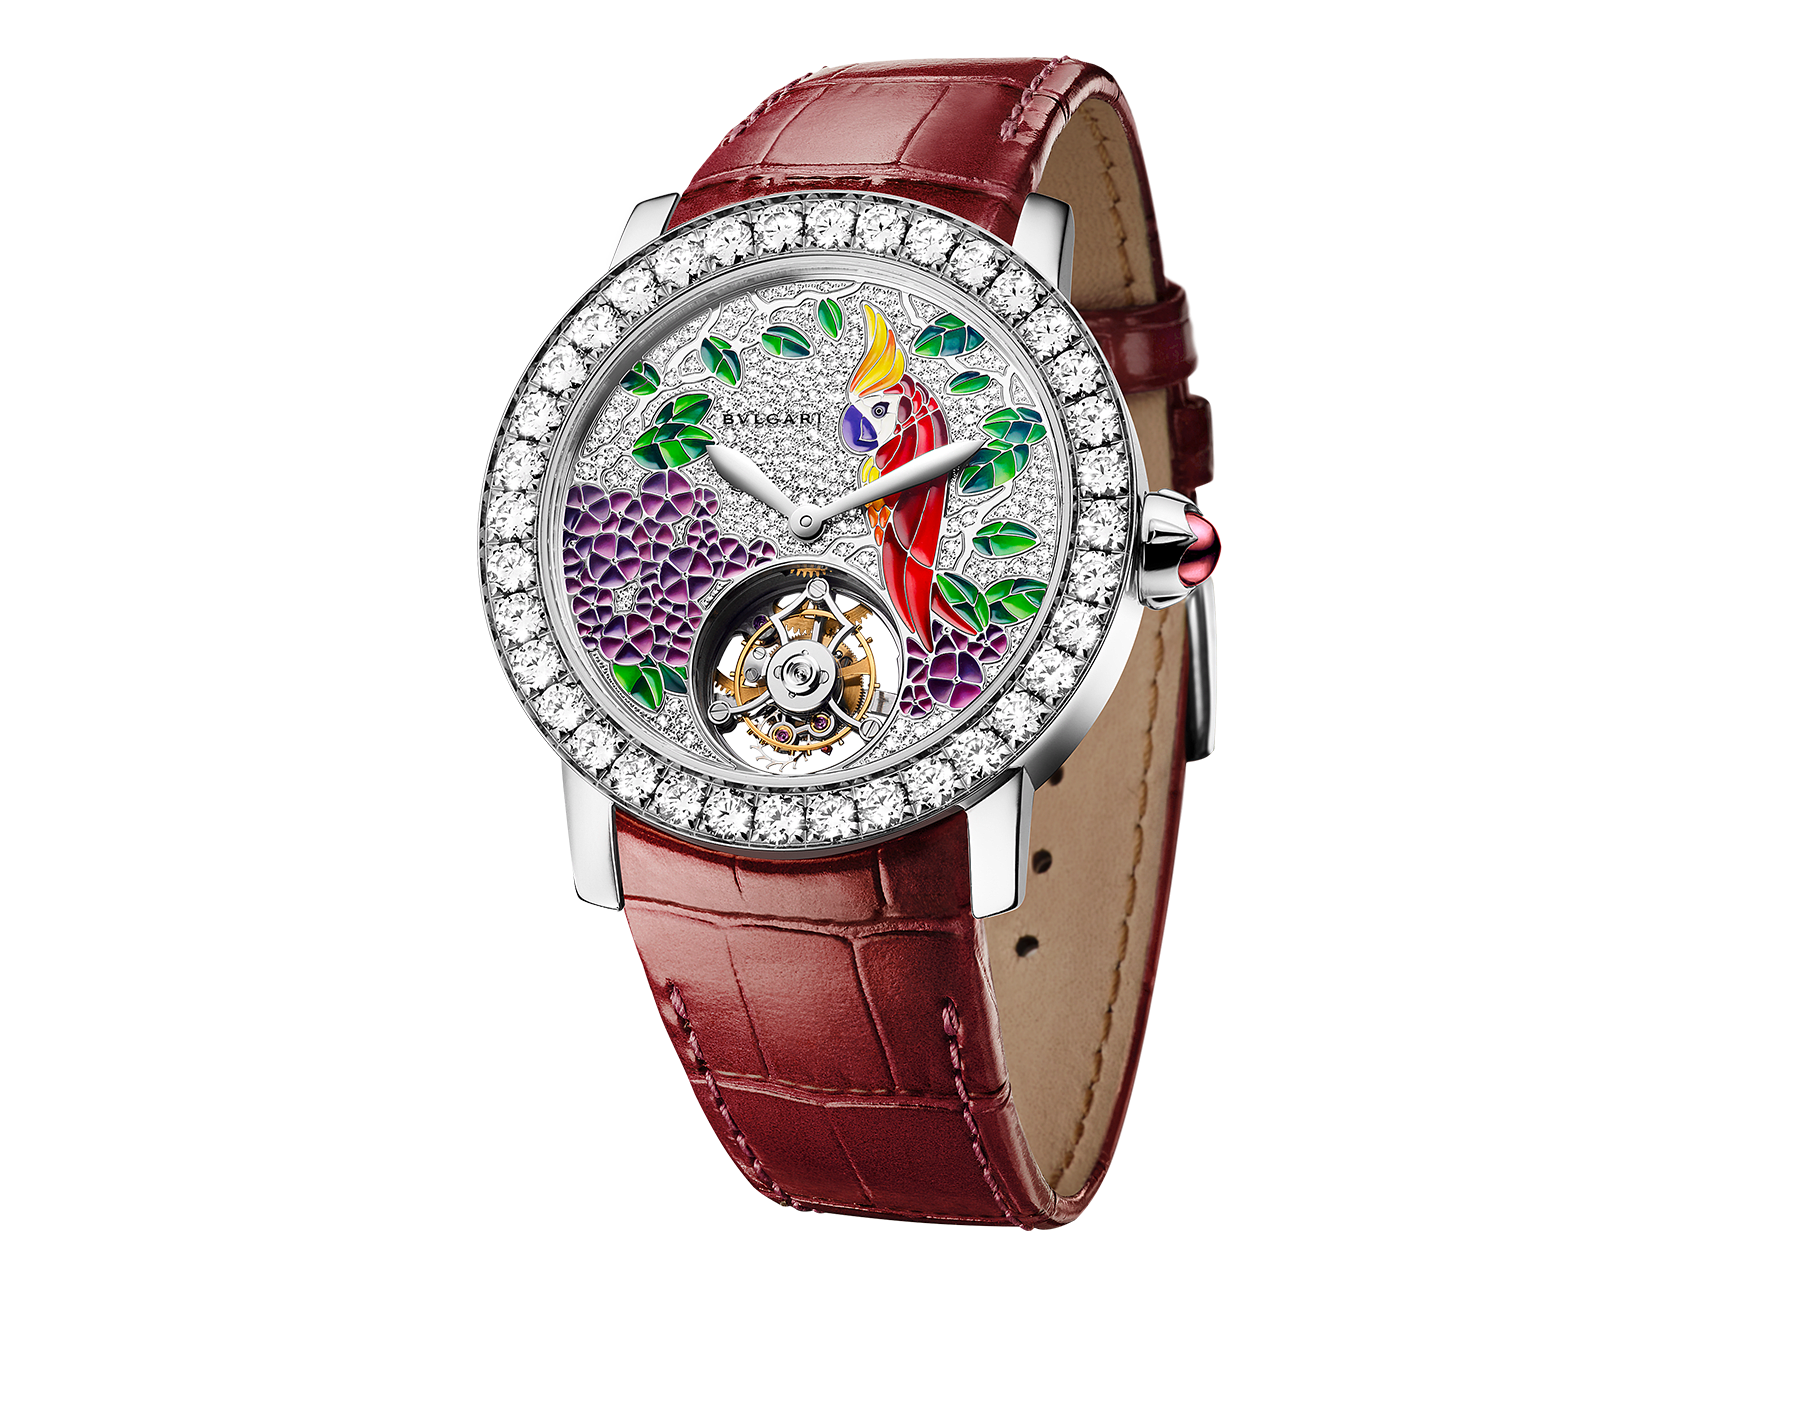 BVLGARI BVLGARI watch with mechanical manufacture movement, automatic winding, see-through tourbillon and sapphire bridge. 18kt white gold case set with brilliant-cut diamonds, demi pavé dial hand-decorated with peinture miniature motifs of a parrot, flowers and leaves, and red alligator bracelet 102405 image 1